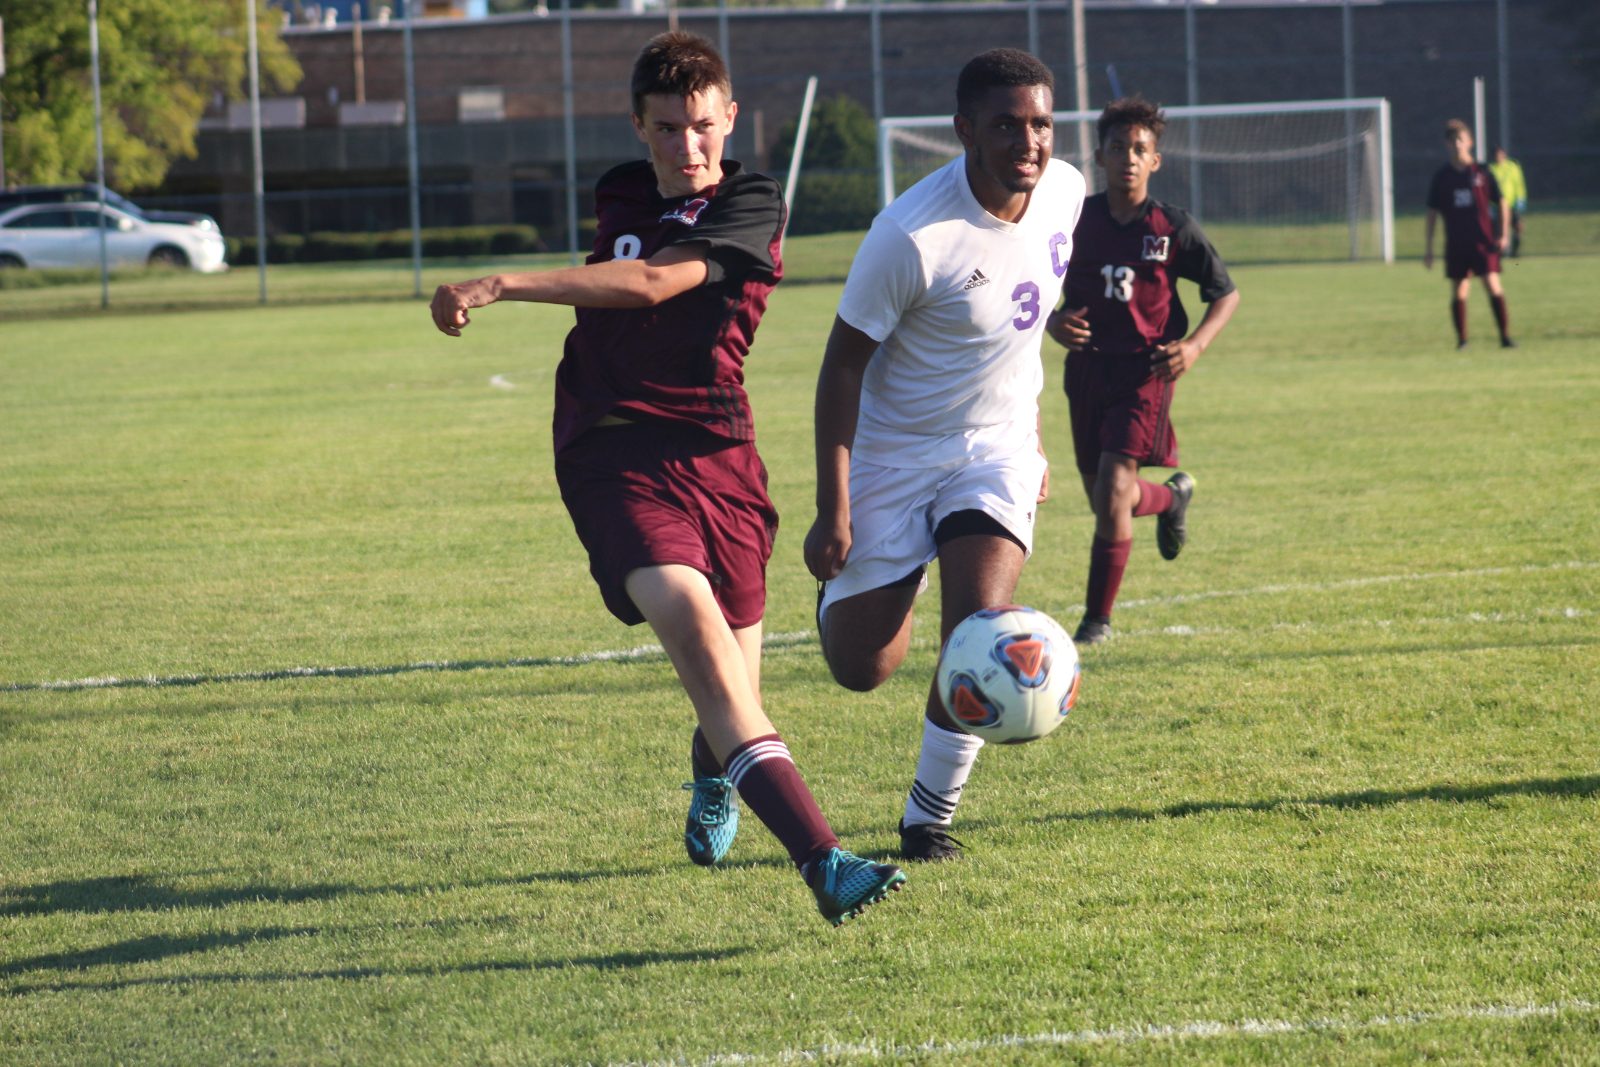 Mishawaka Boys Soccer – August 2020